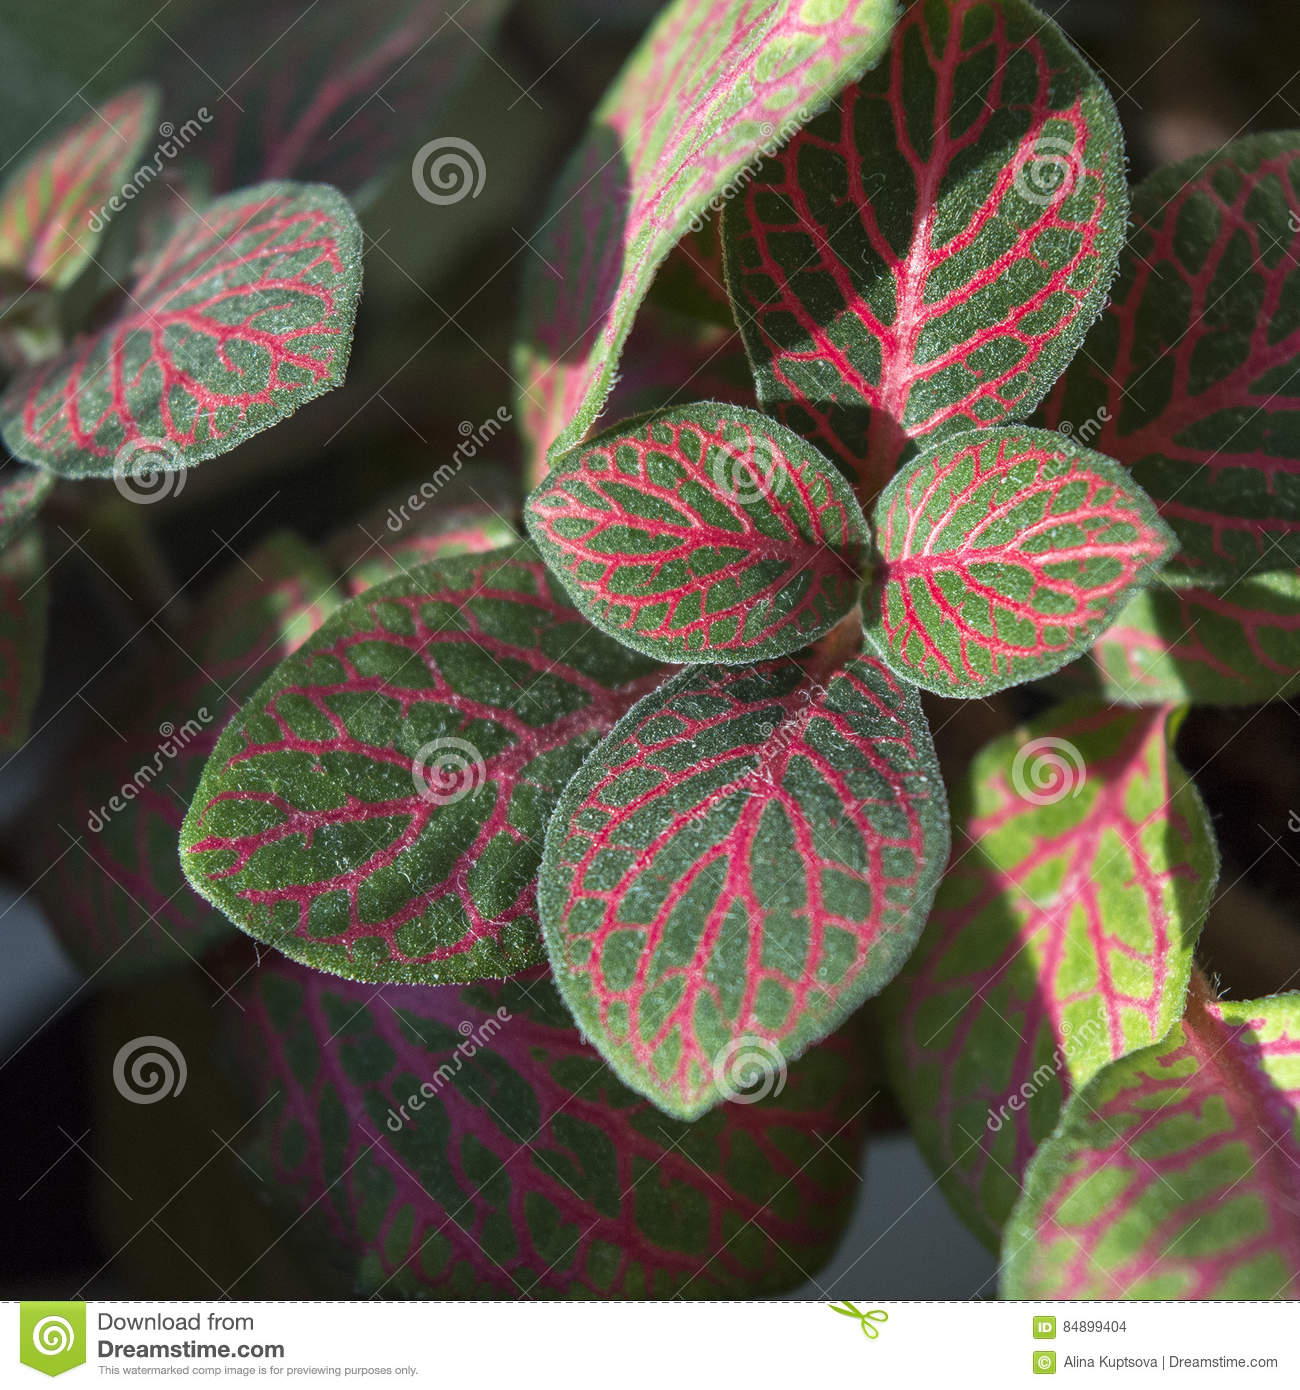 Bright onia Foliage With Red Veins Stock Photo - Image of ... on red and green ornamental grass, red and green leaf plant, red and green ground cover,